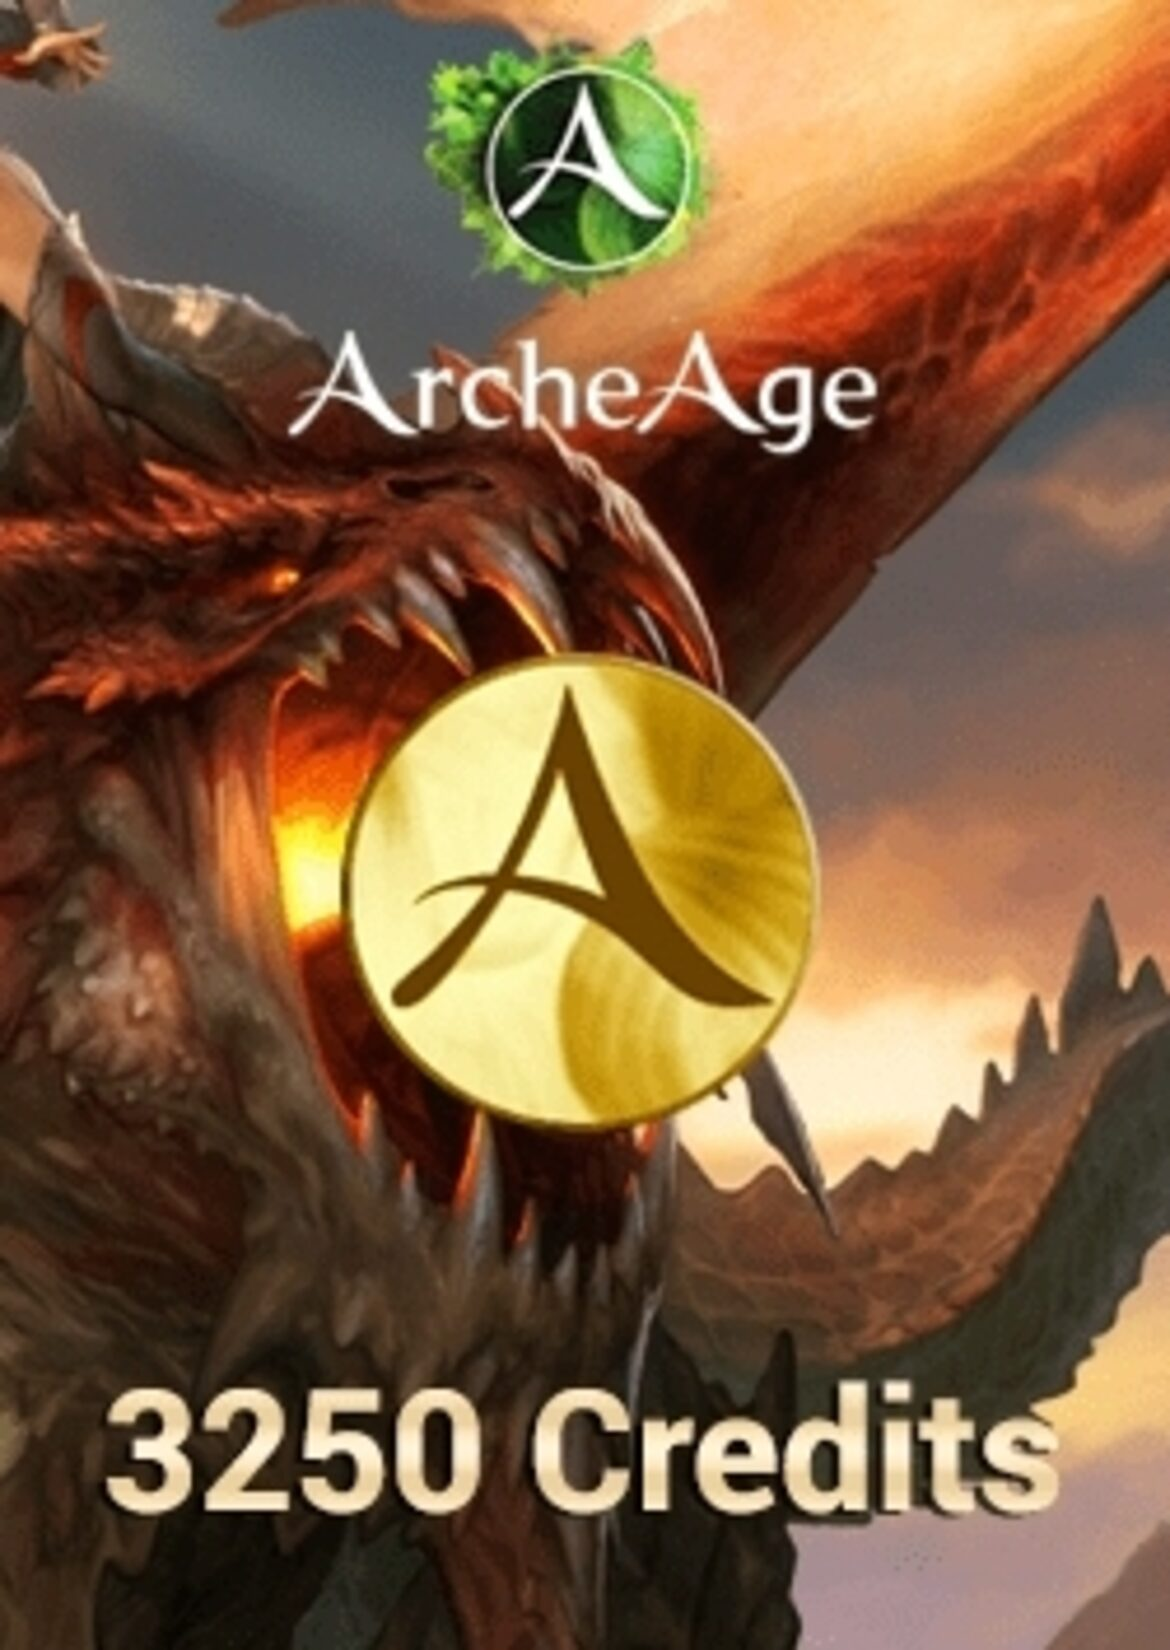 Archeage Review 2020.įsigykite Archeage 3250 Credits Pack Key Global Gera Kaina